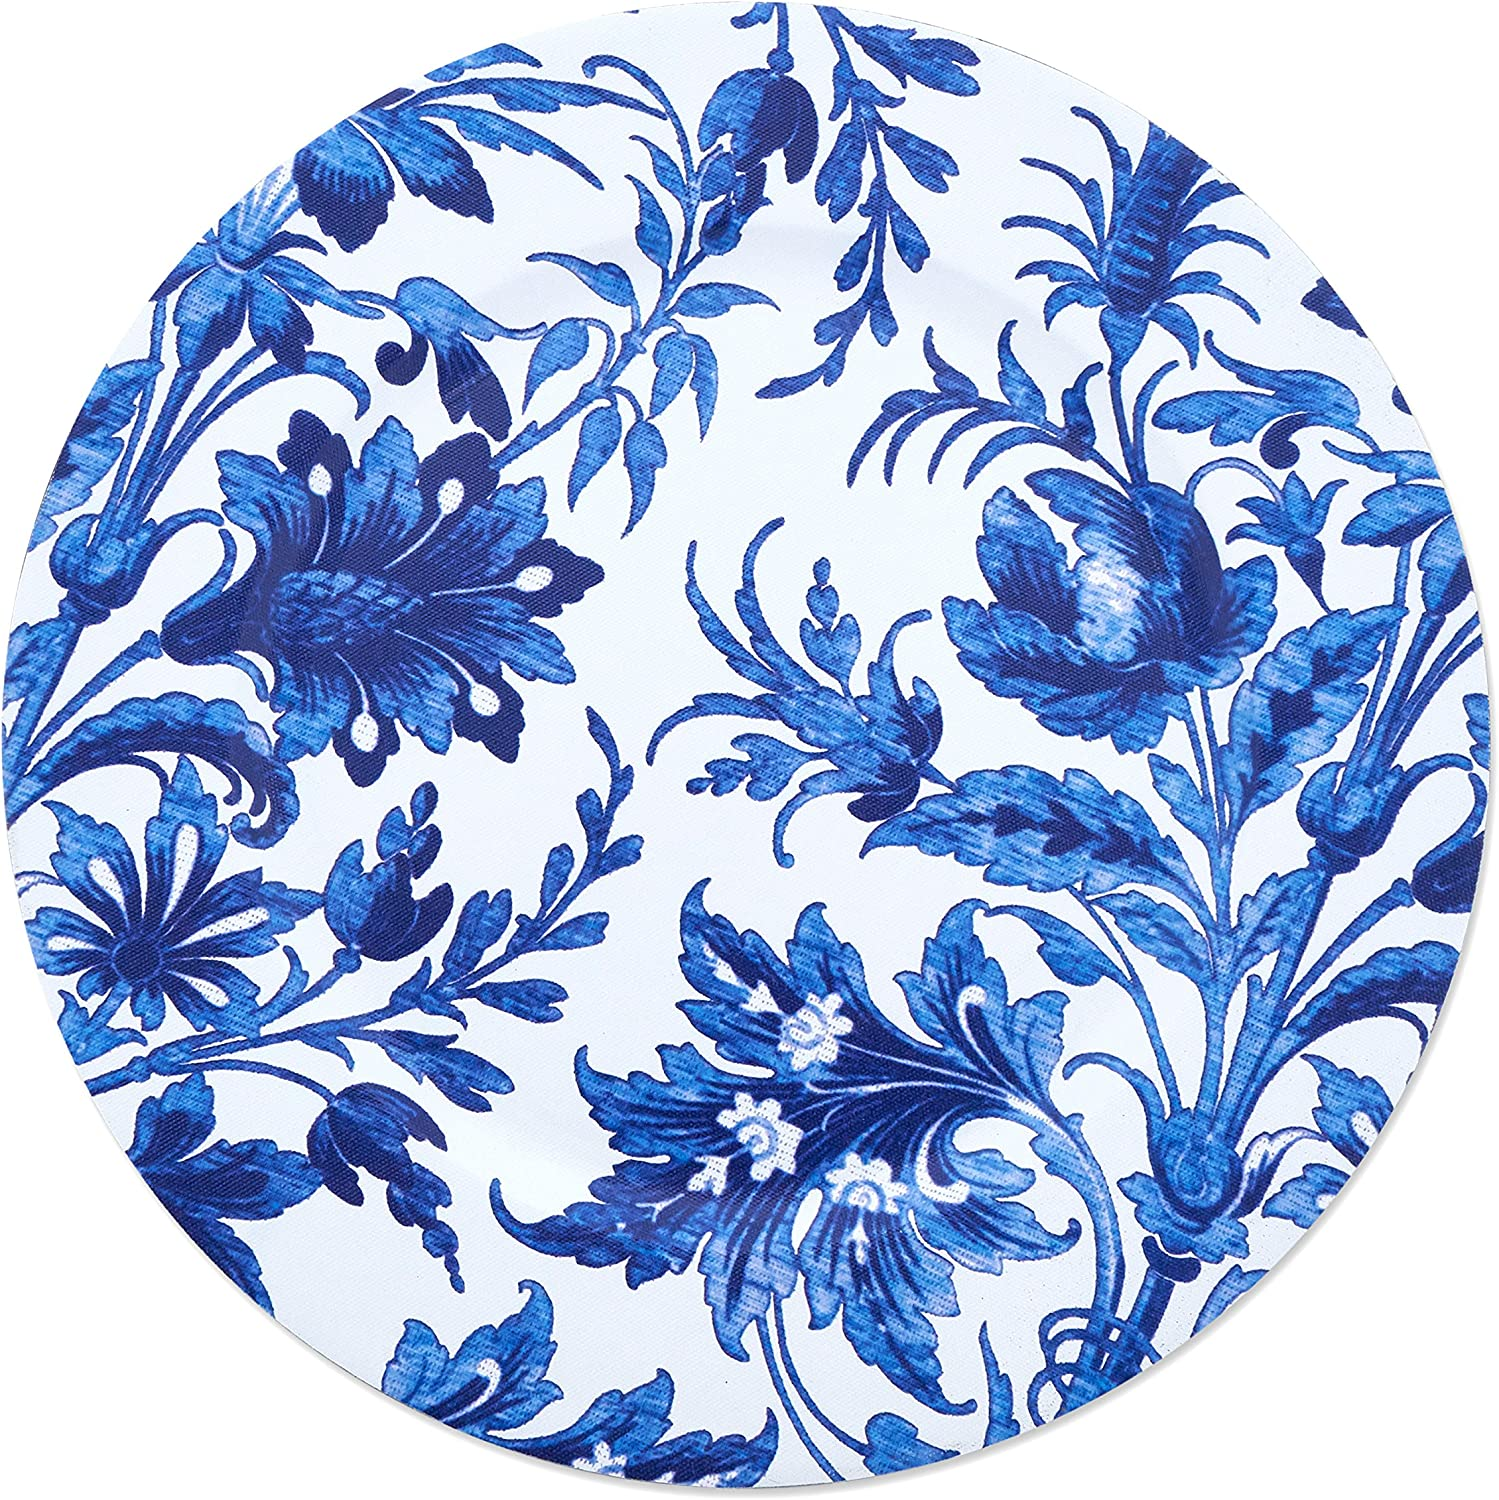 SARO LIFESTYLE CH016.IN14R Florentia Design French Style Floral Print Decorative Charger Plate 14 Indigo